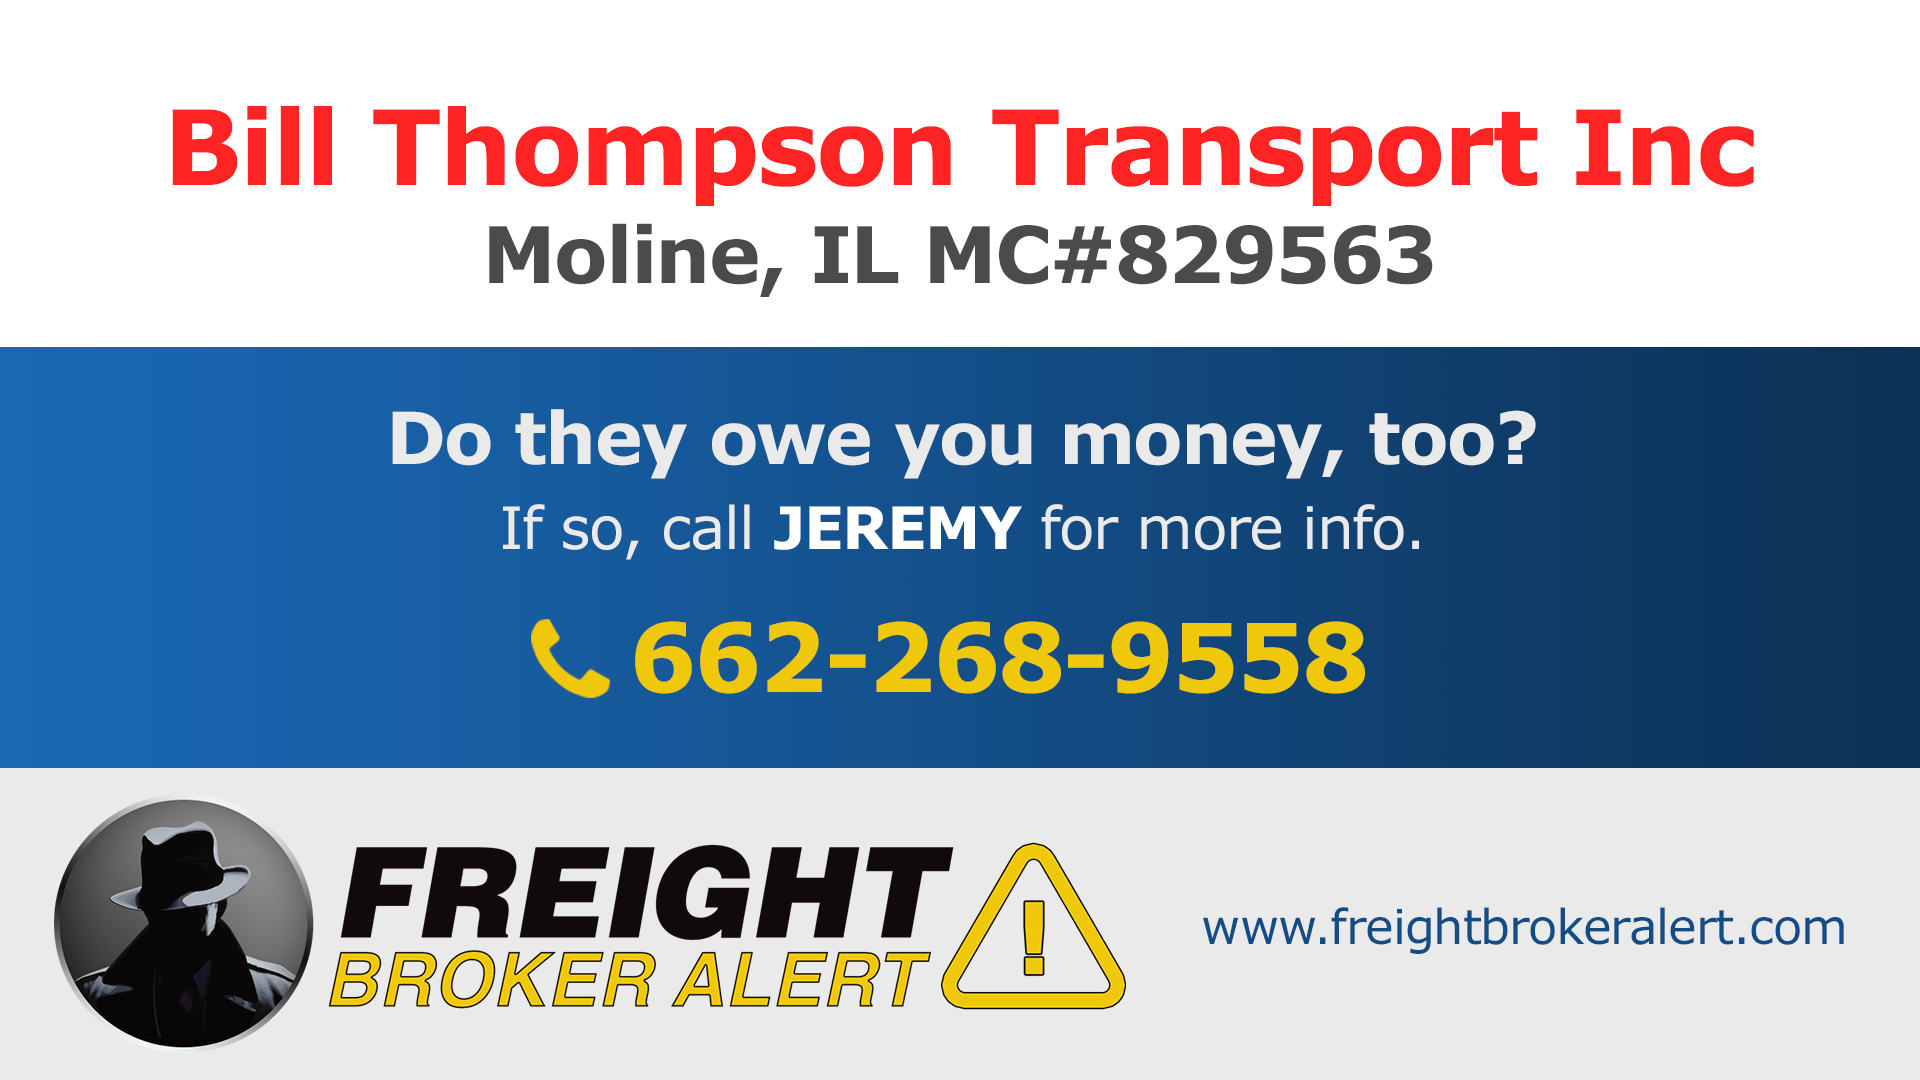 Bill Thompson Transport Inc Illinois